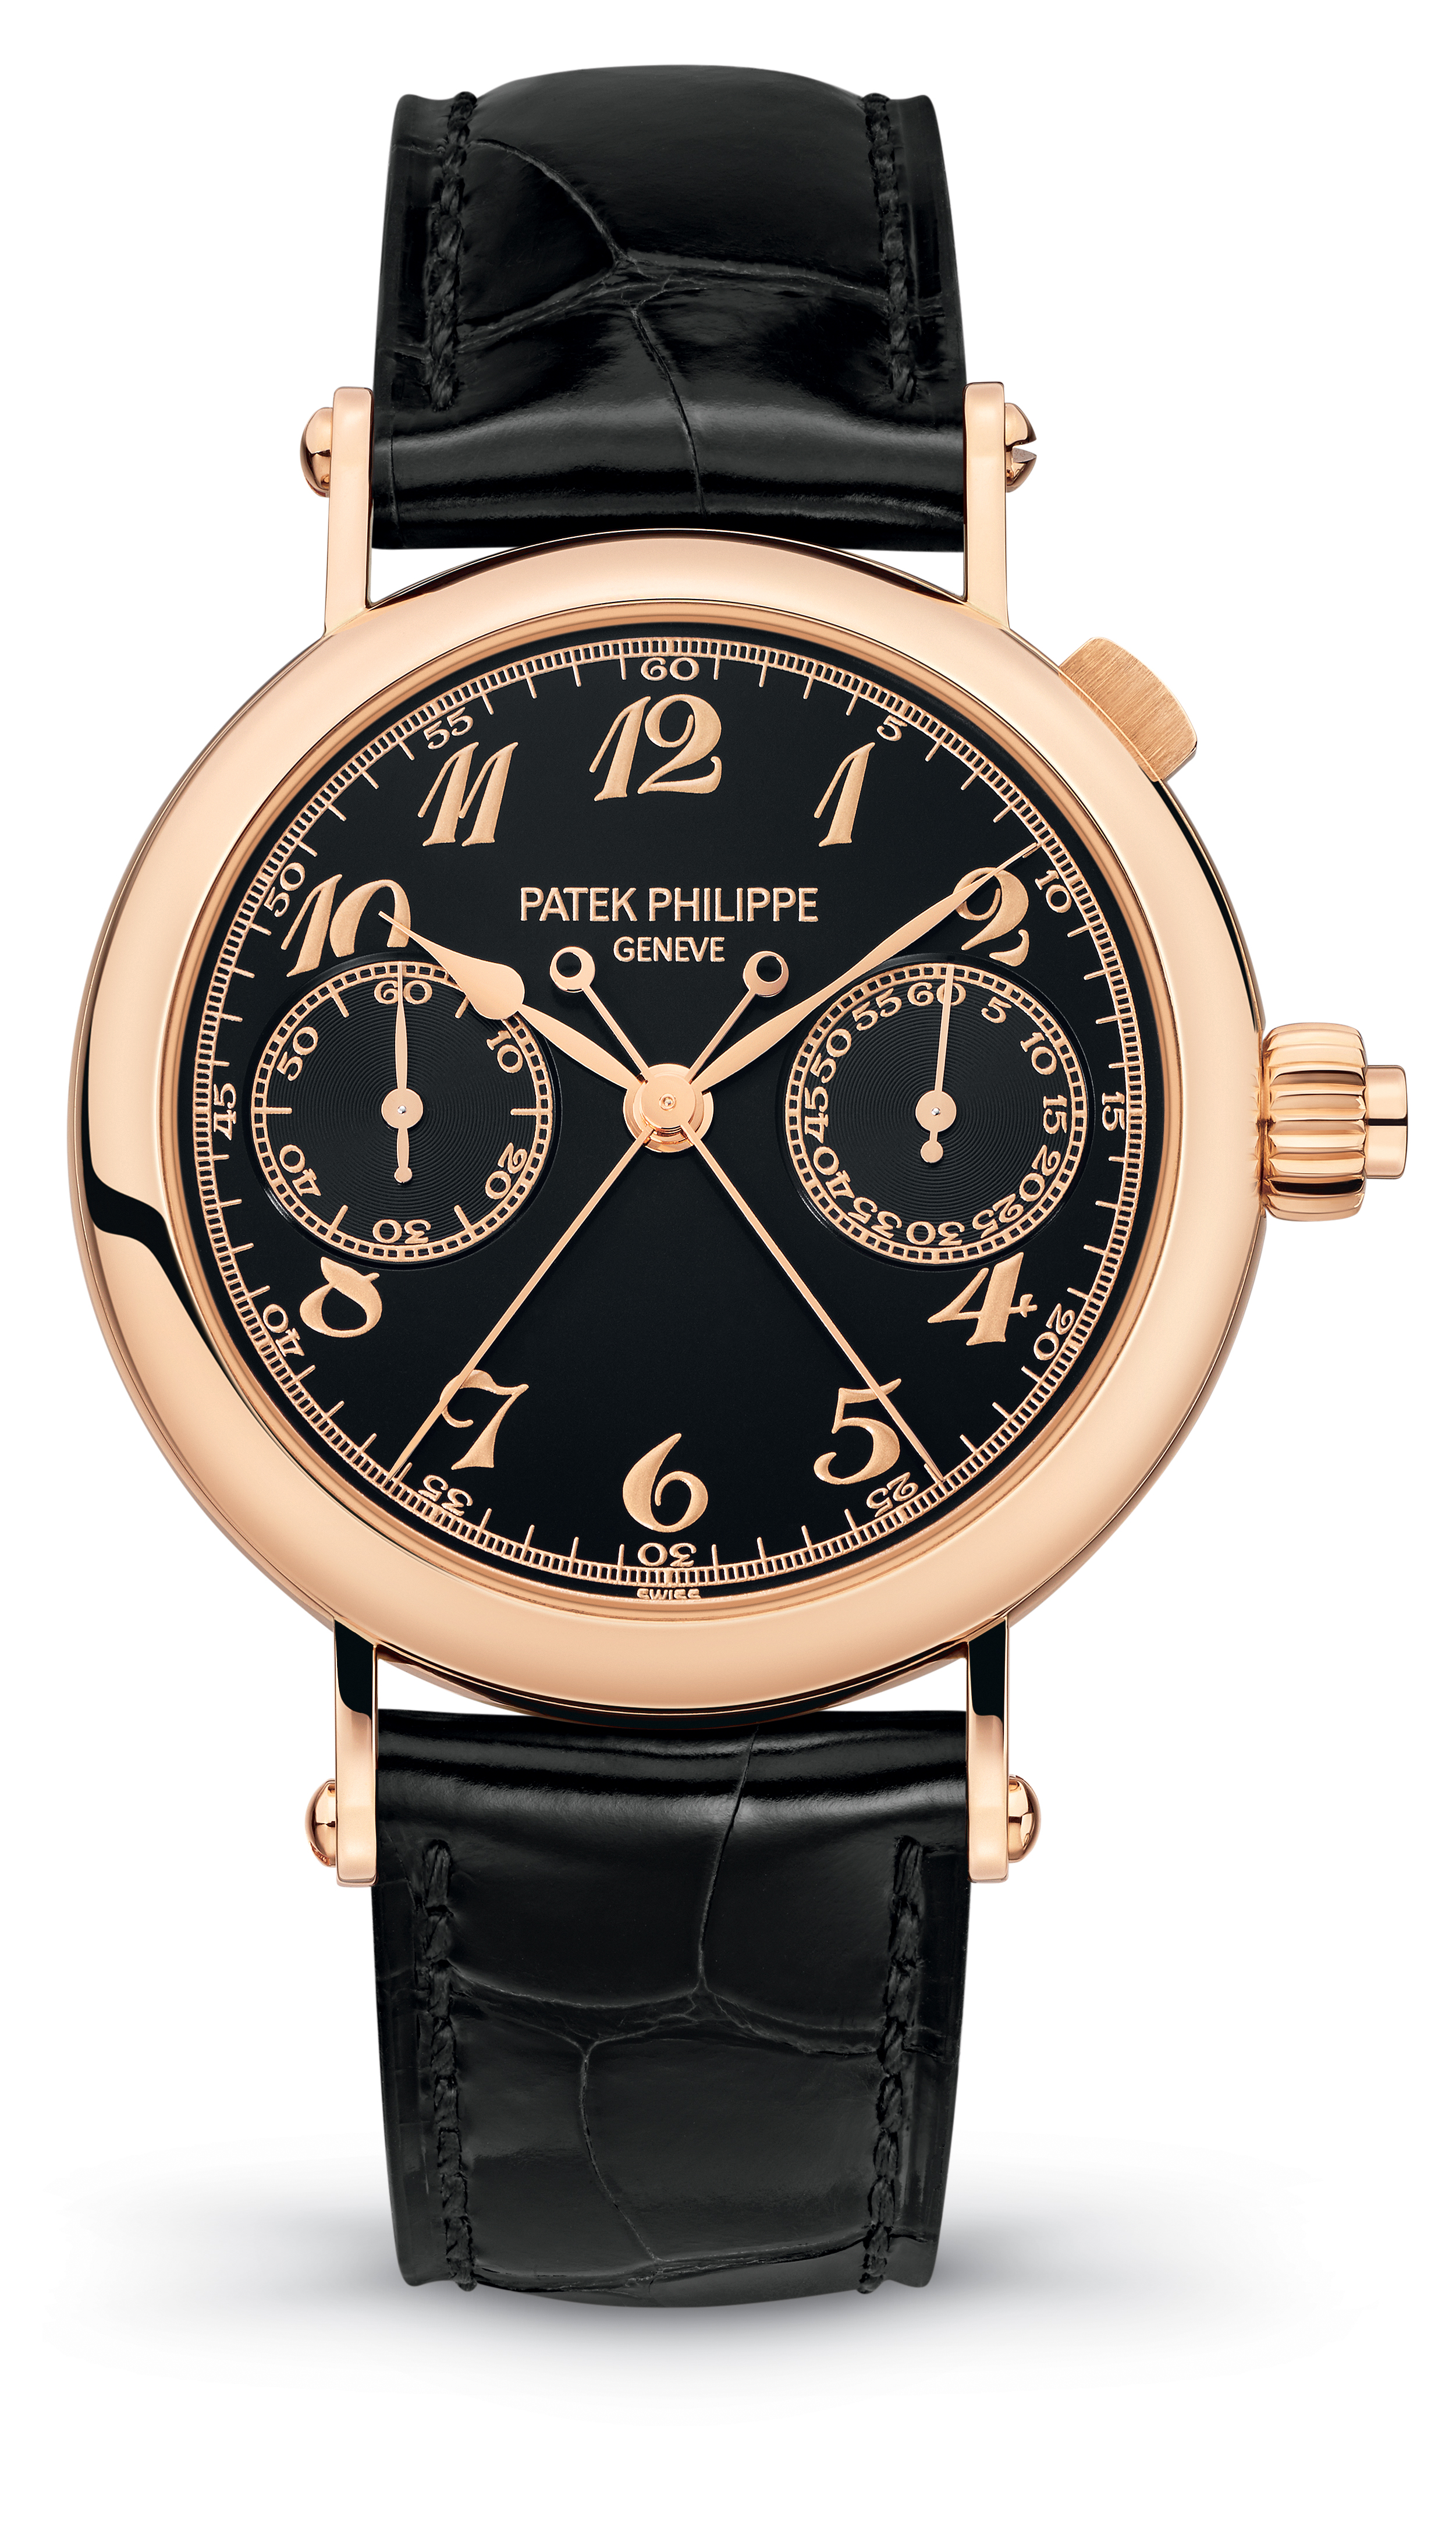 Grand Complication - 5959R-001